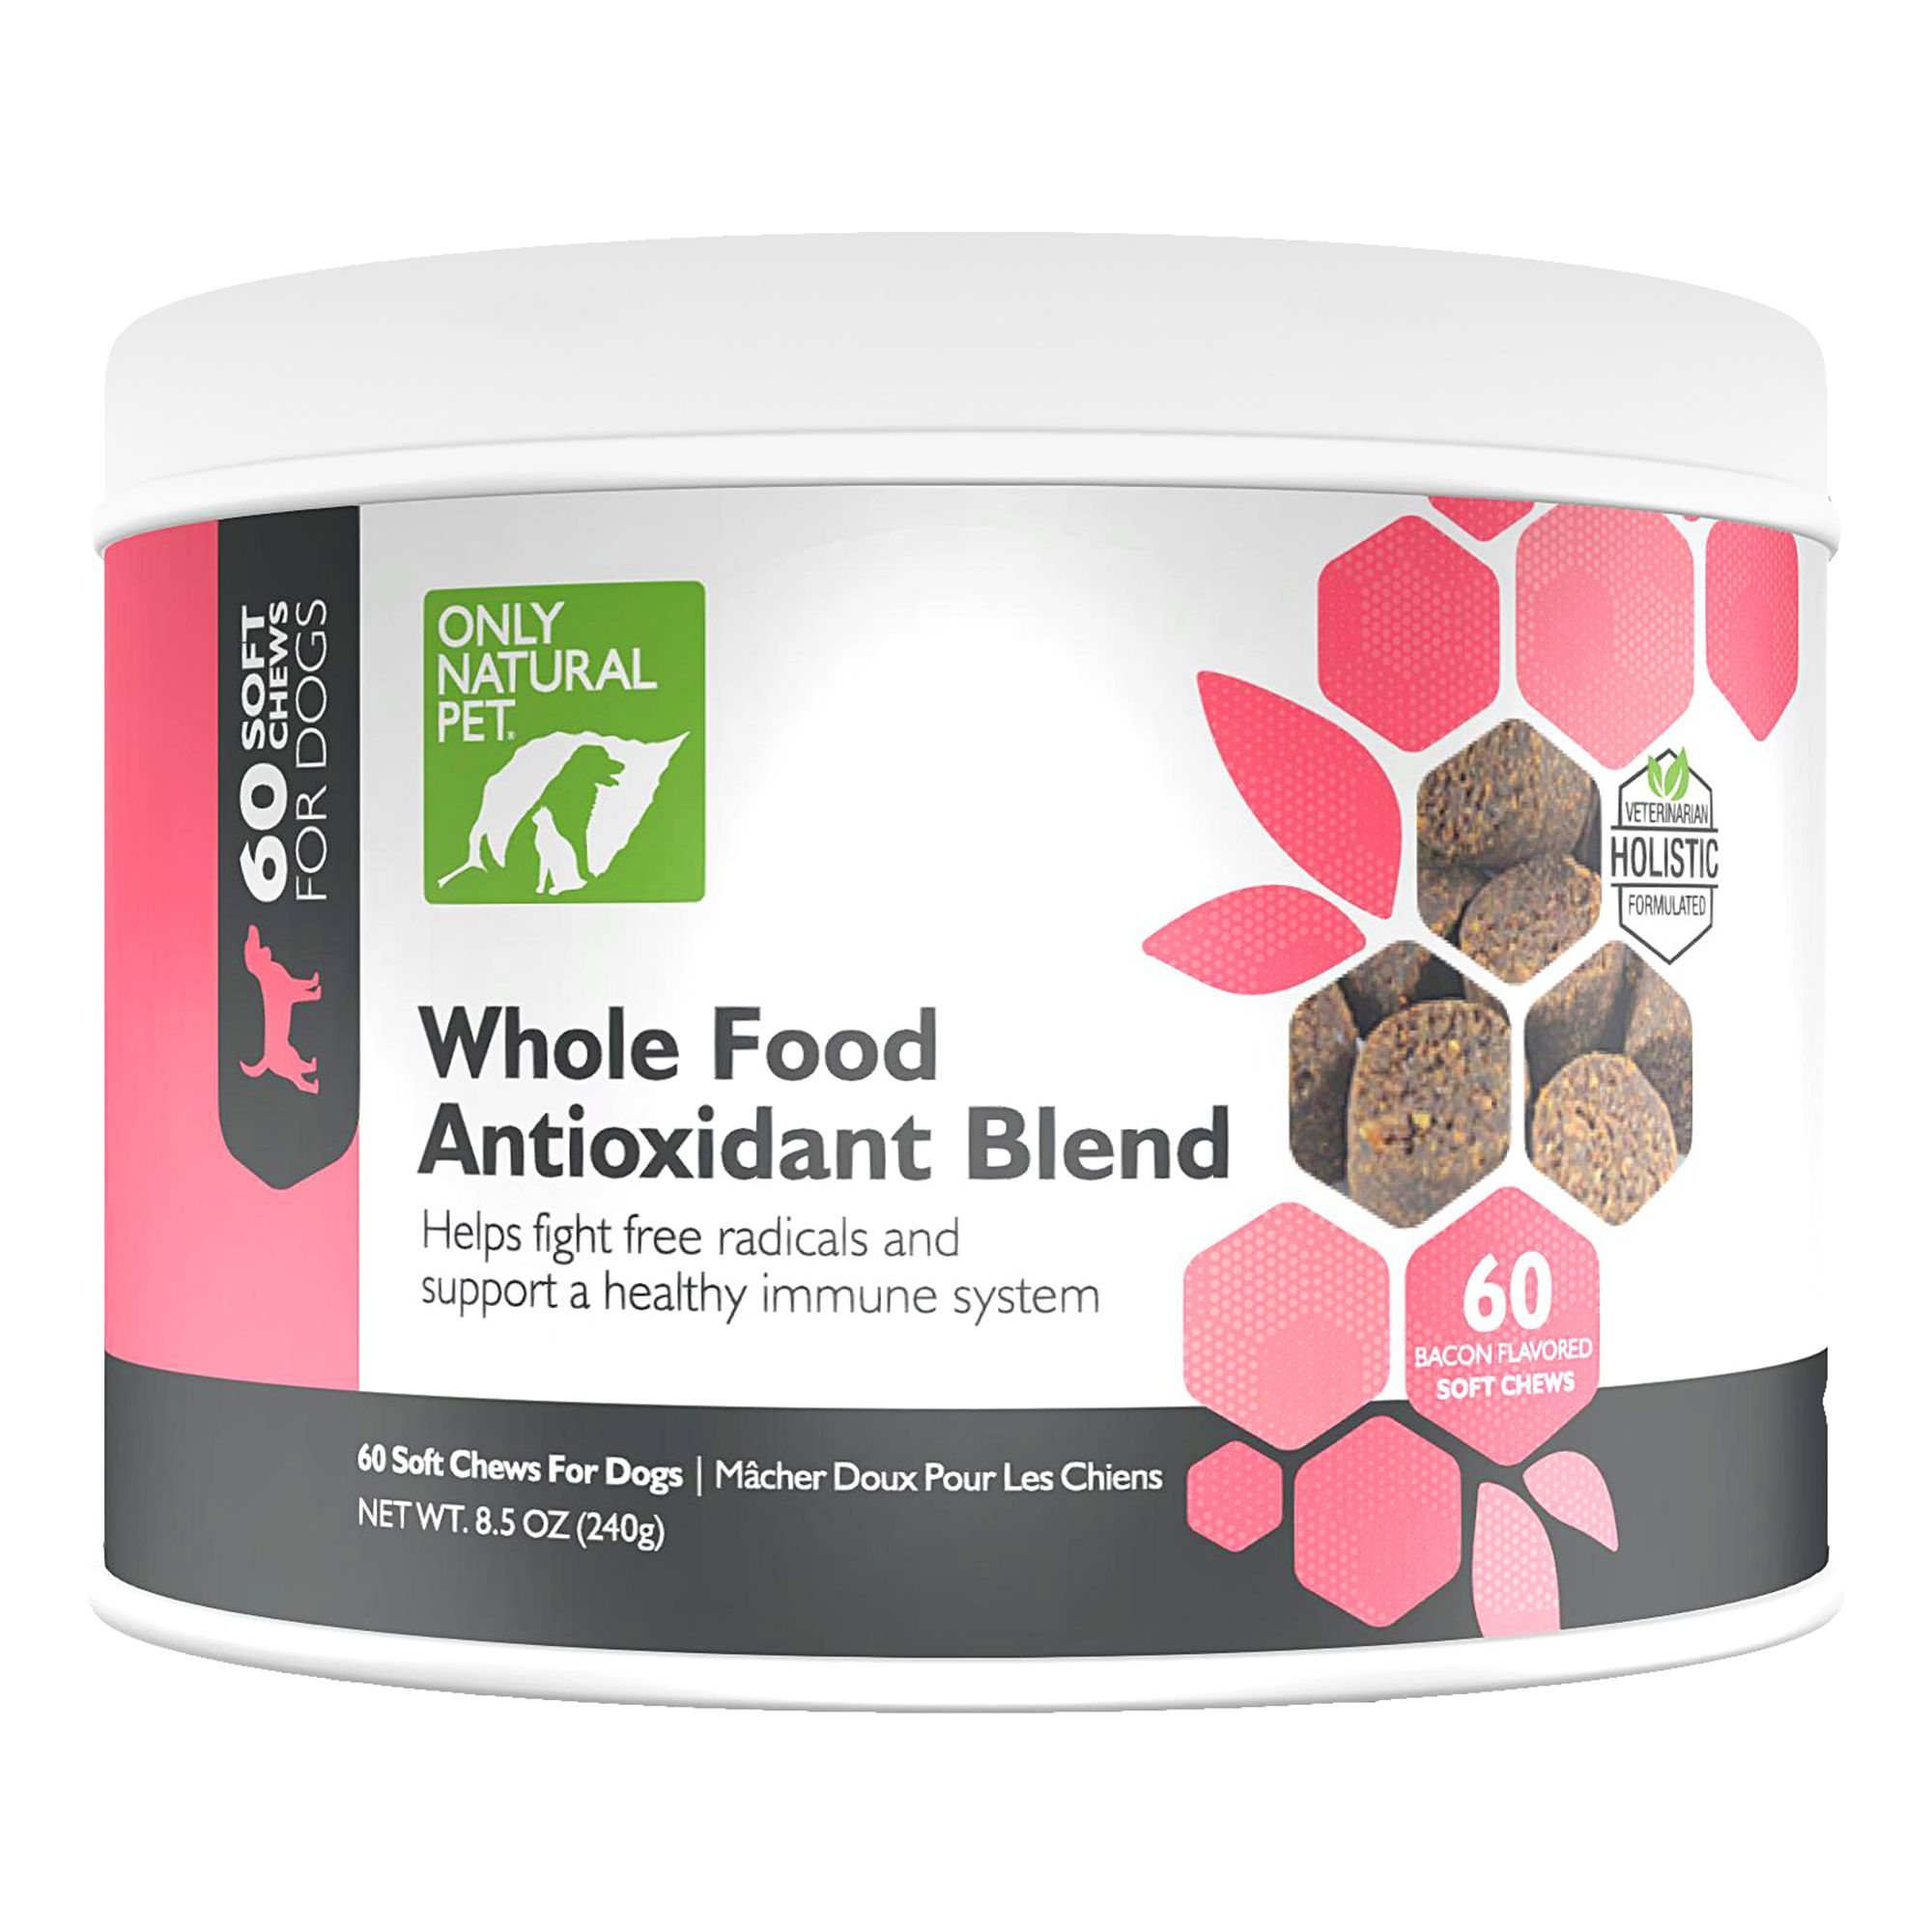 Only Natural Pet Whole Food Antioxidant Soft Dog Chews